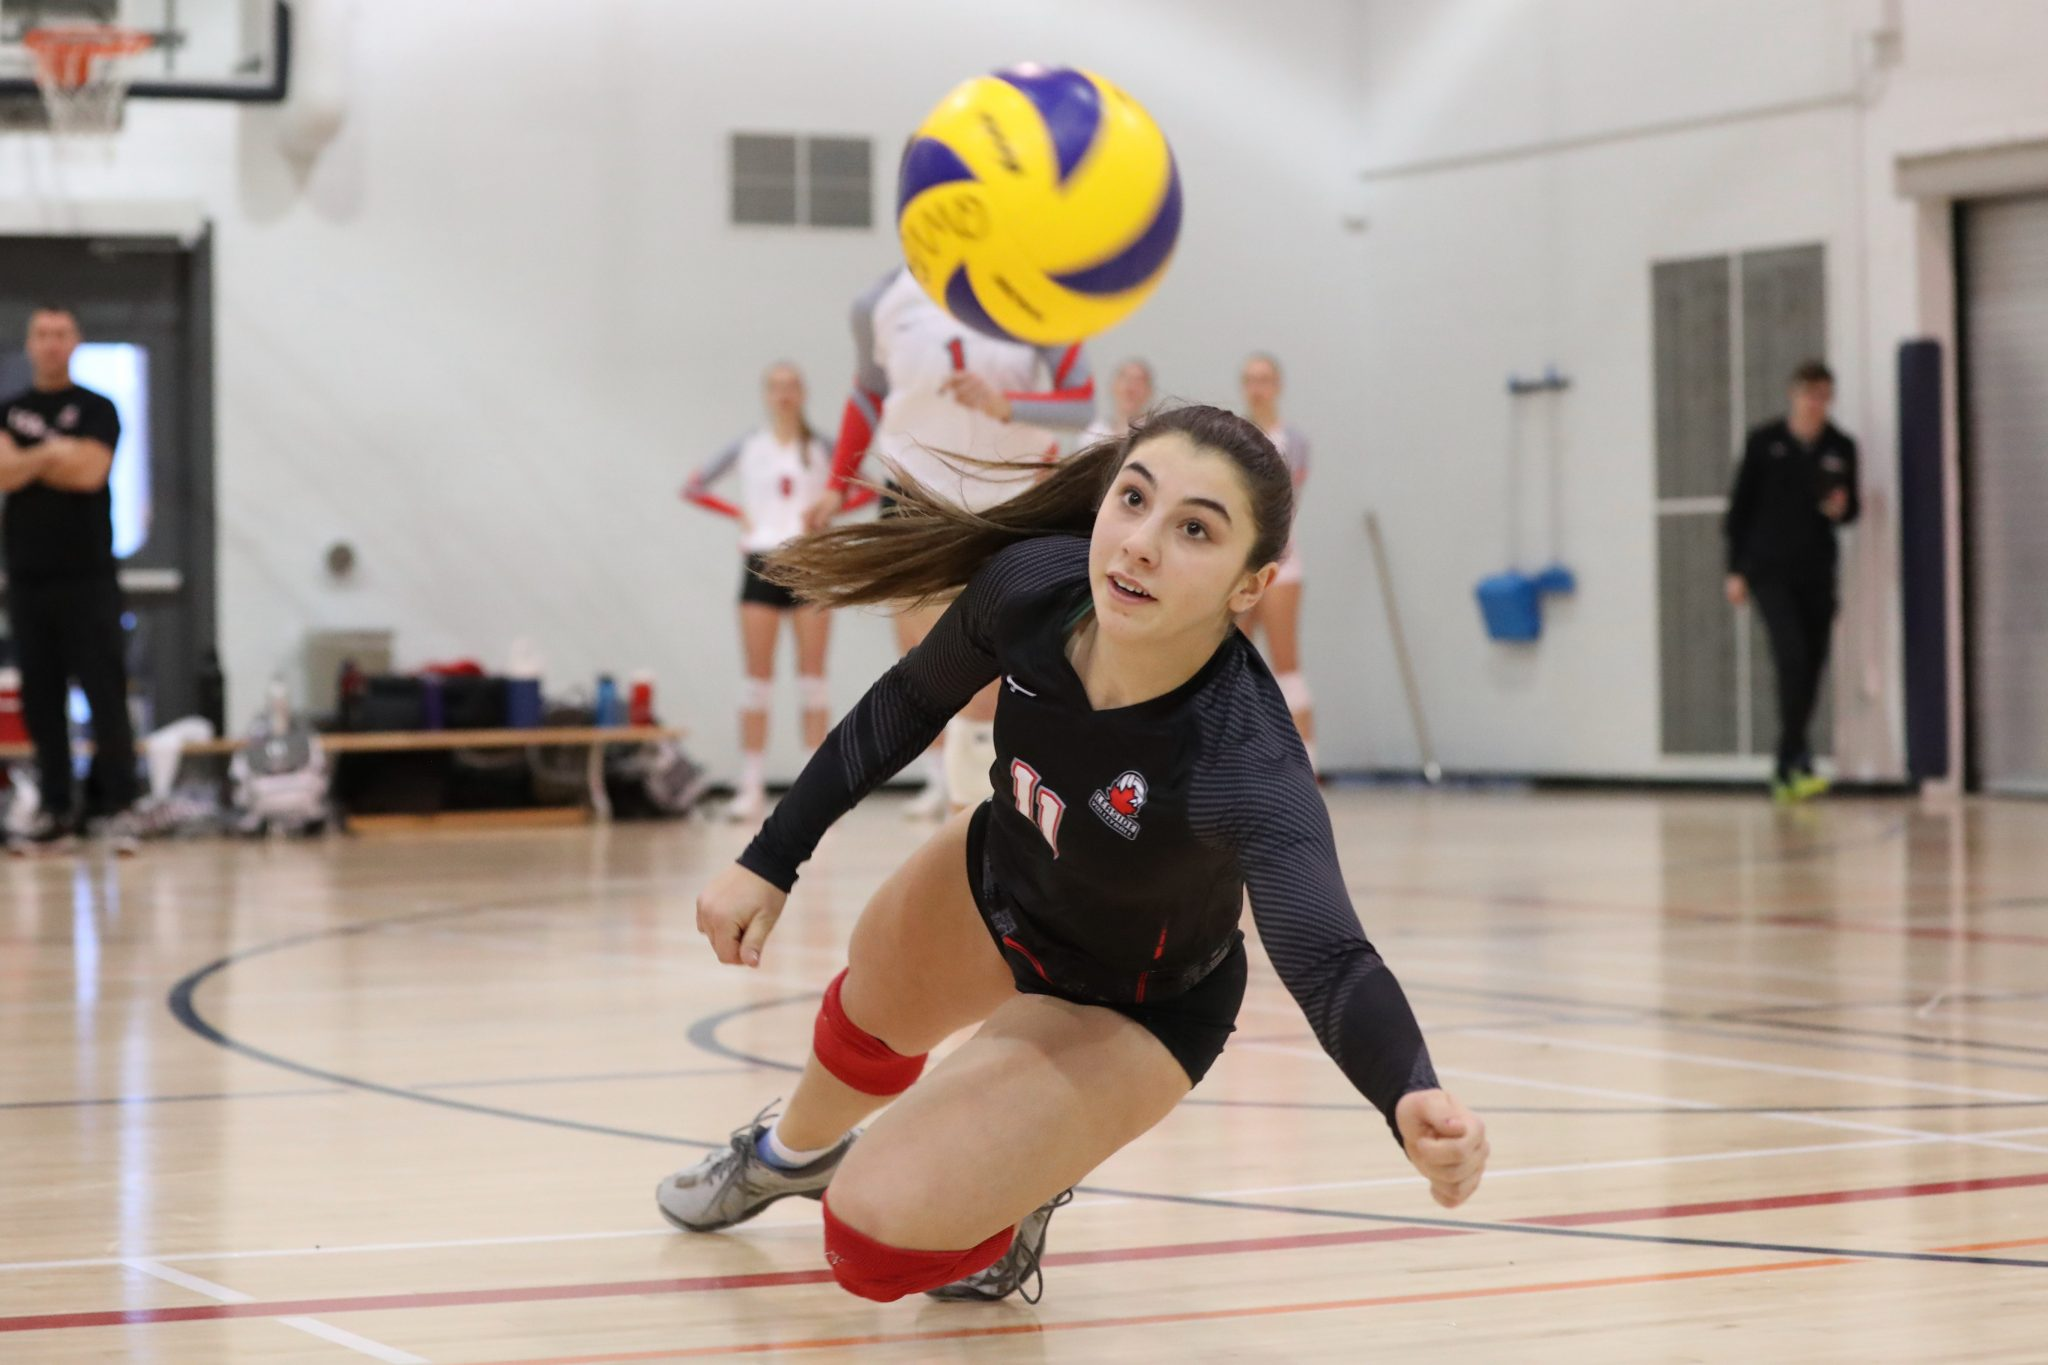 Female athlete dives for a volleyball